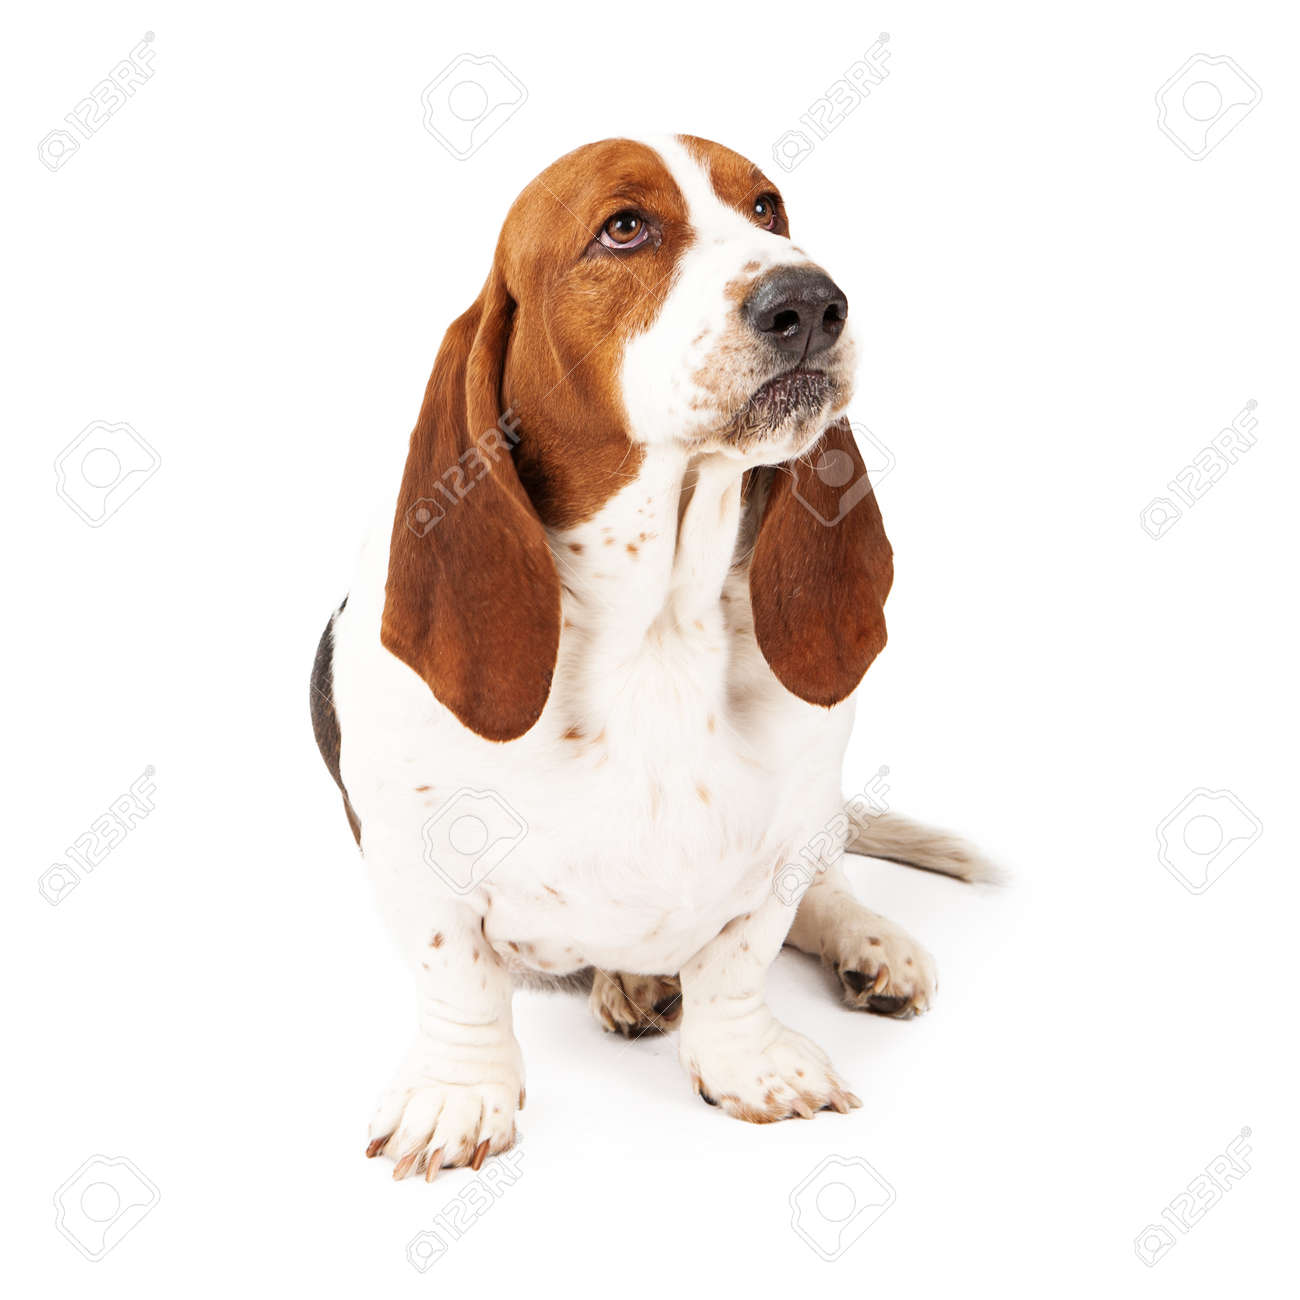 An Upset Basset Hound Dog With A Funny Look On His Face Stock Photo Picture And Royalty Free Image Image 29200303